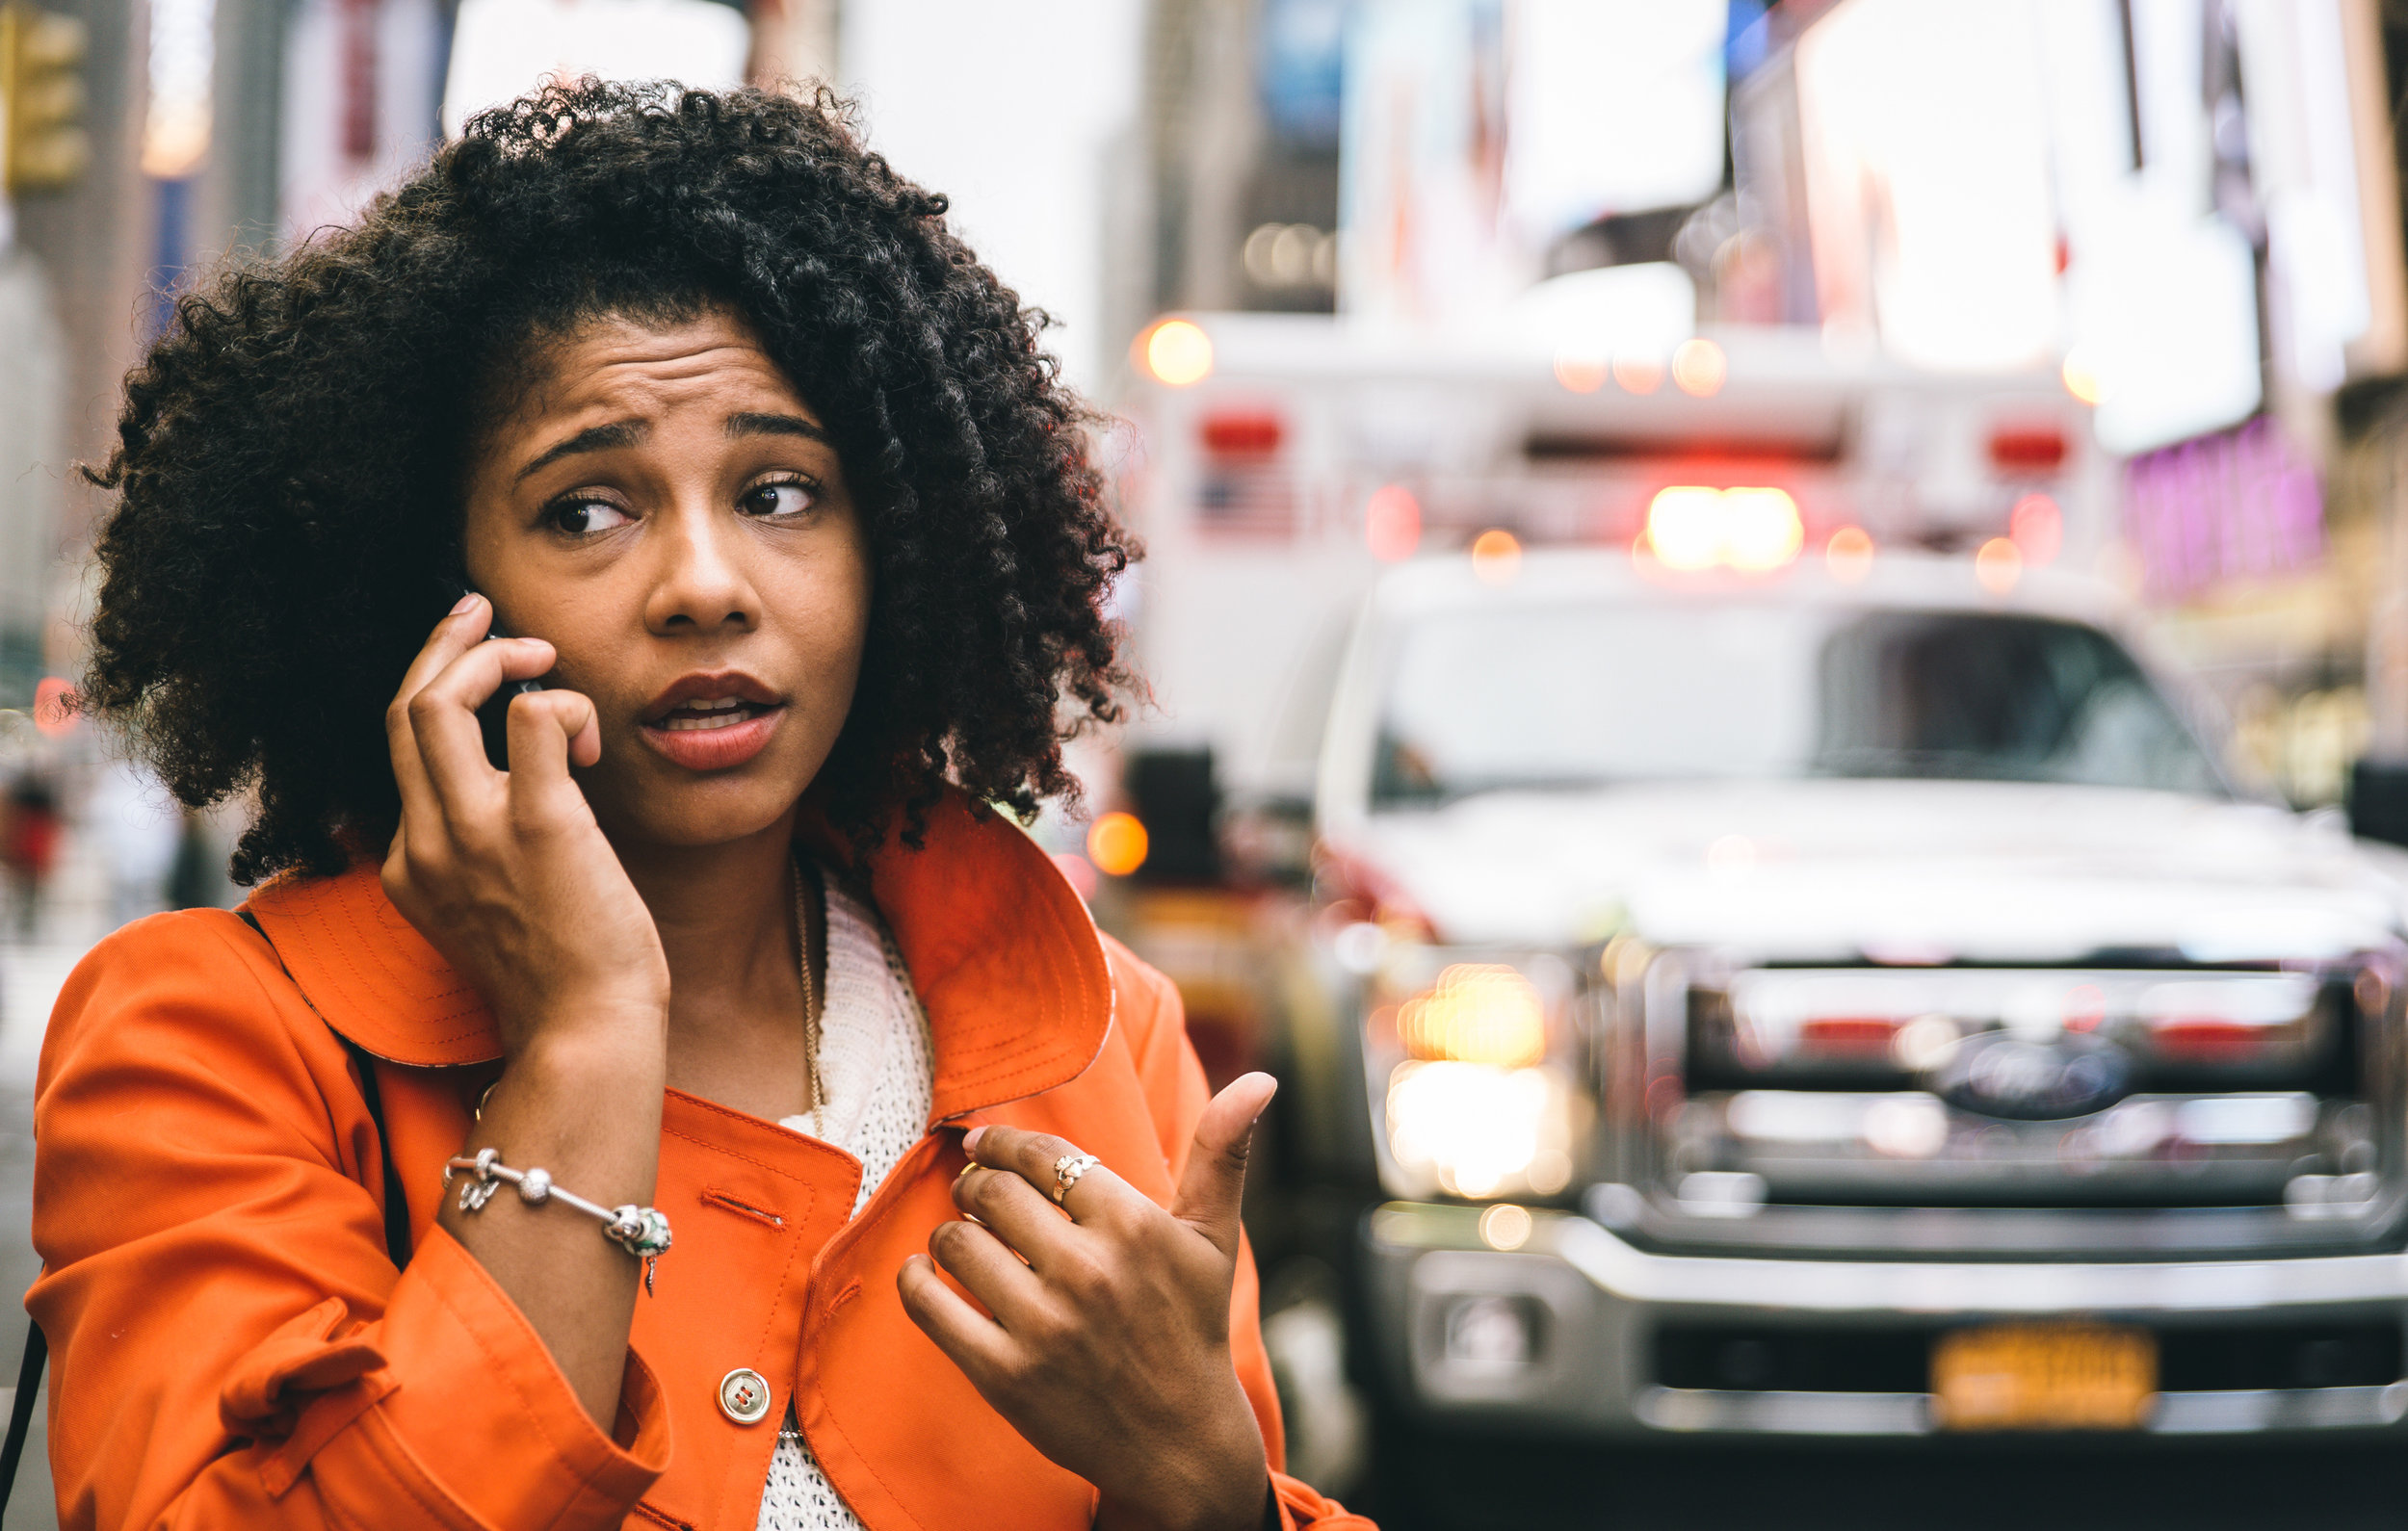 Woman on phone with ambulance in background